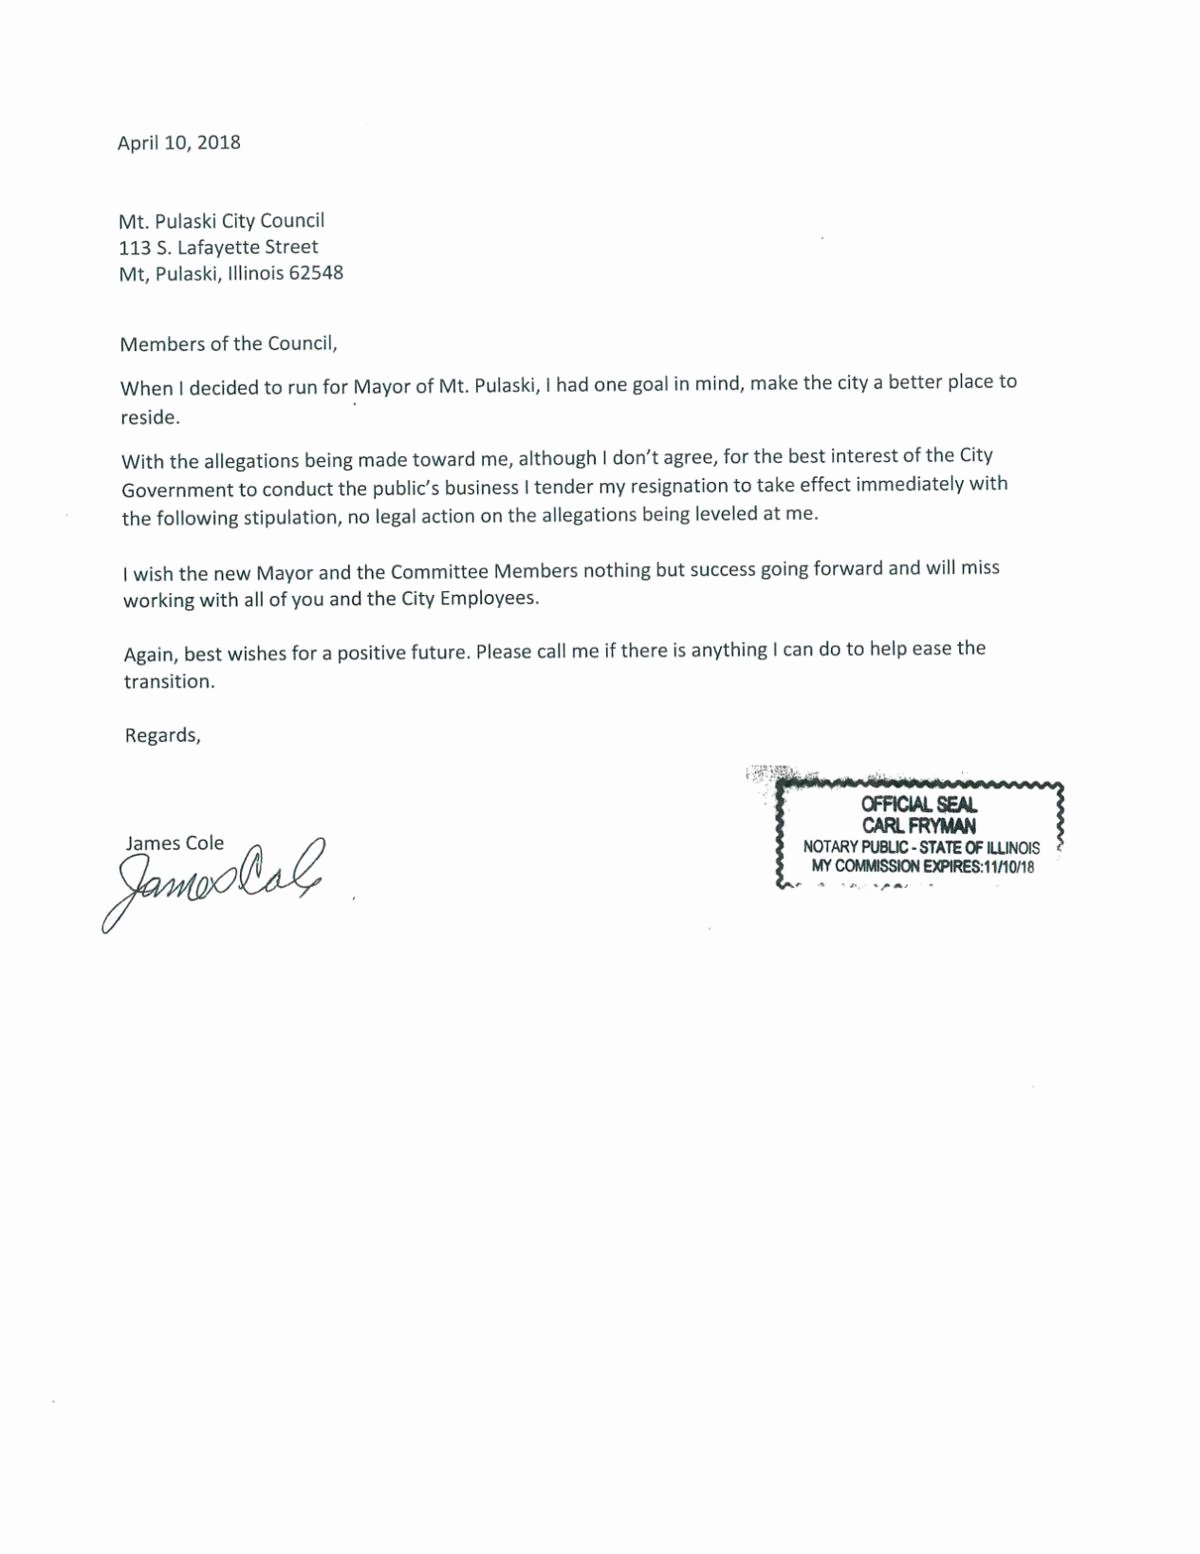 Lox Letter Example Inspirational Mount Pulaski Mayor Resigns asks City Council Not to Take